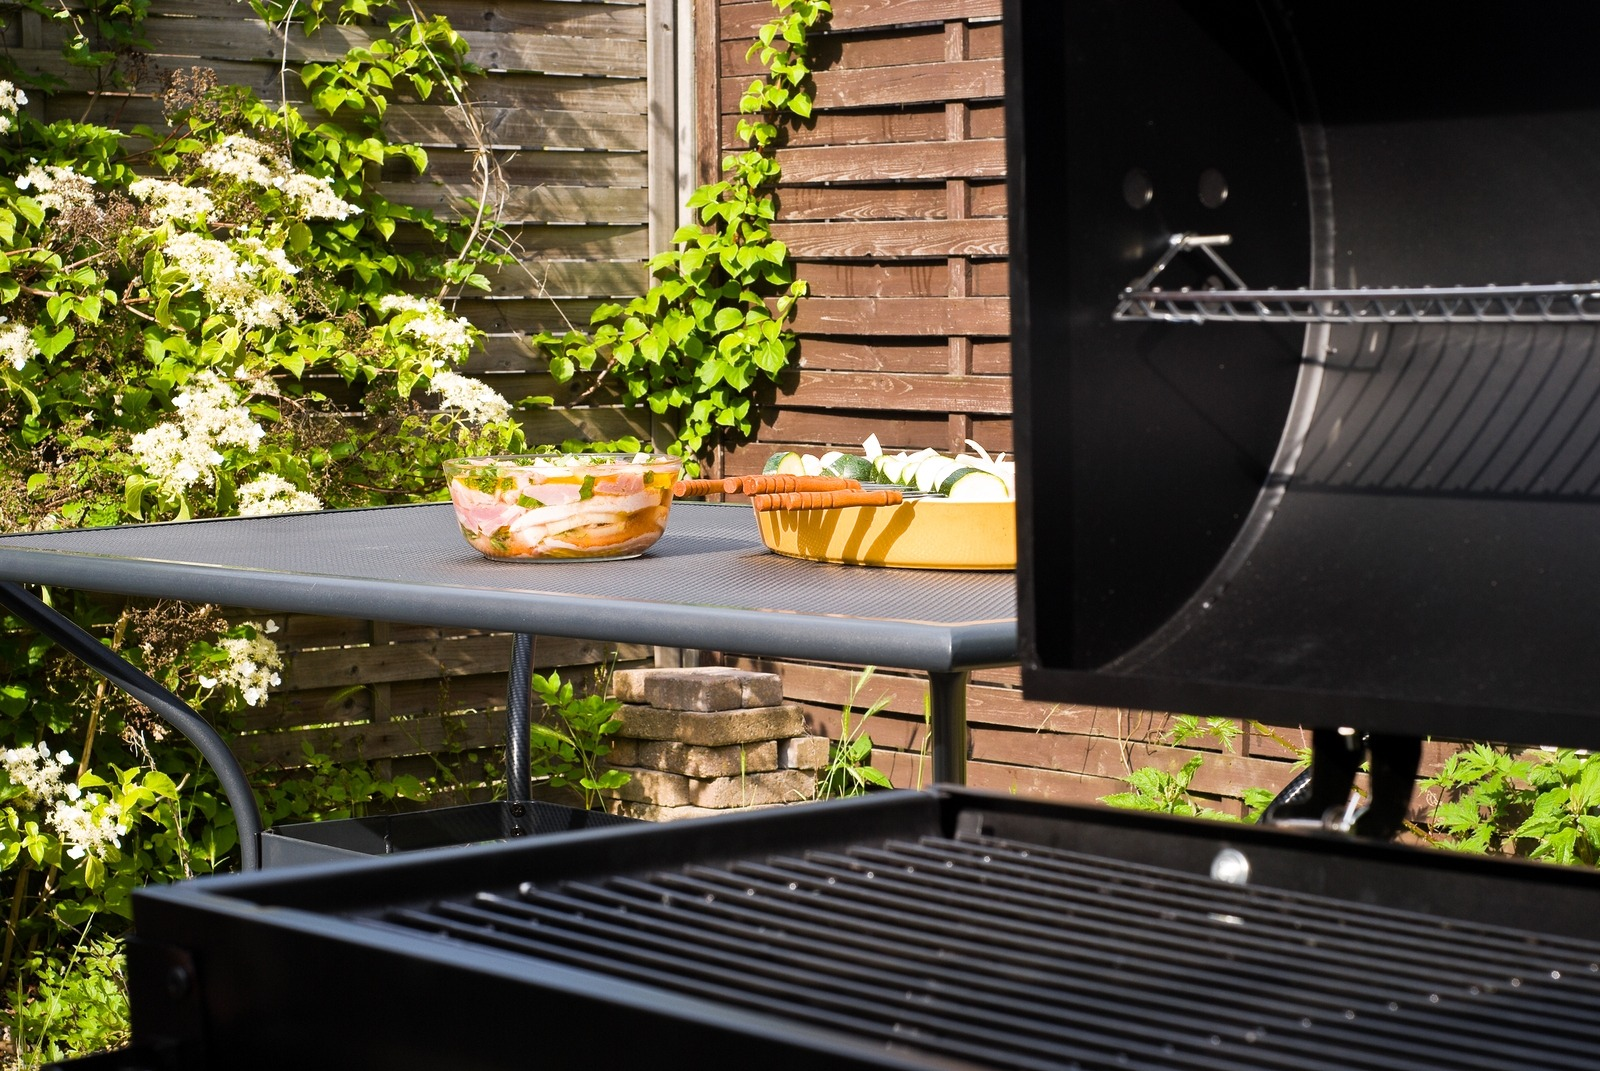 How to Maintain a Propane Gas Grill